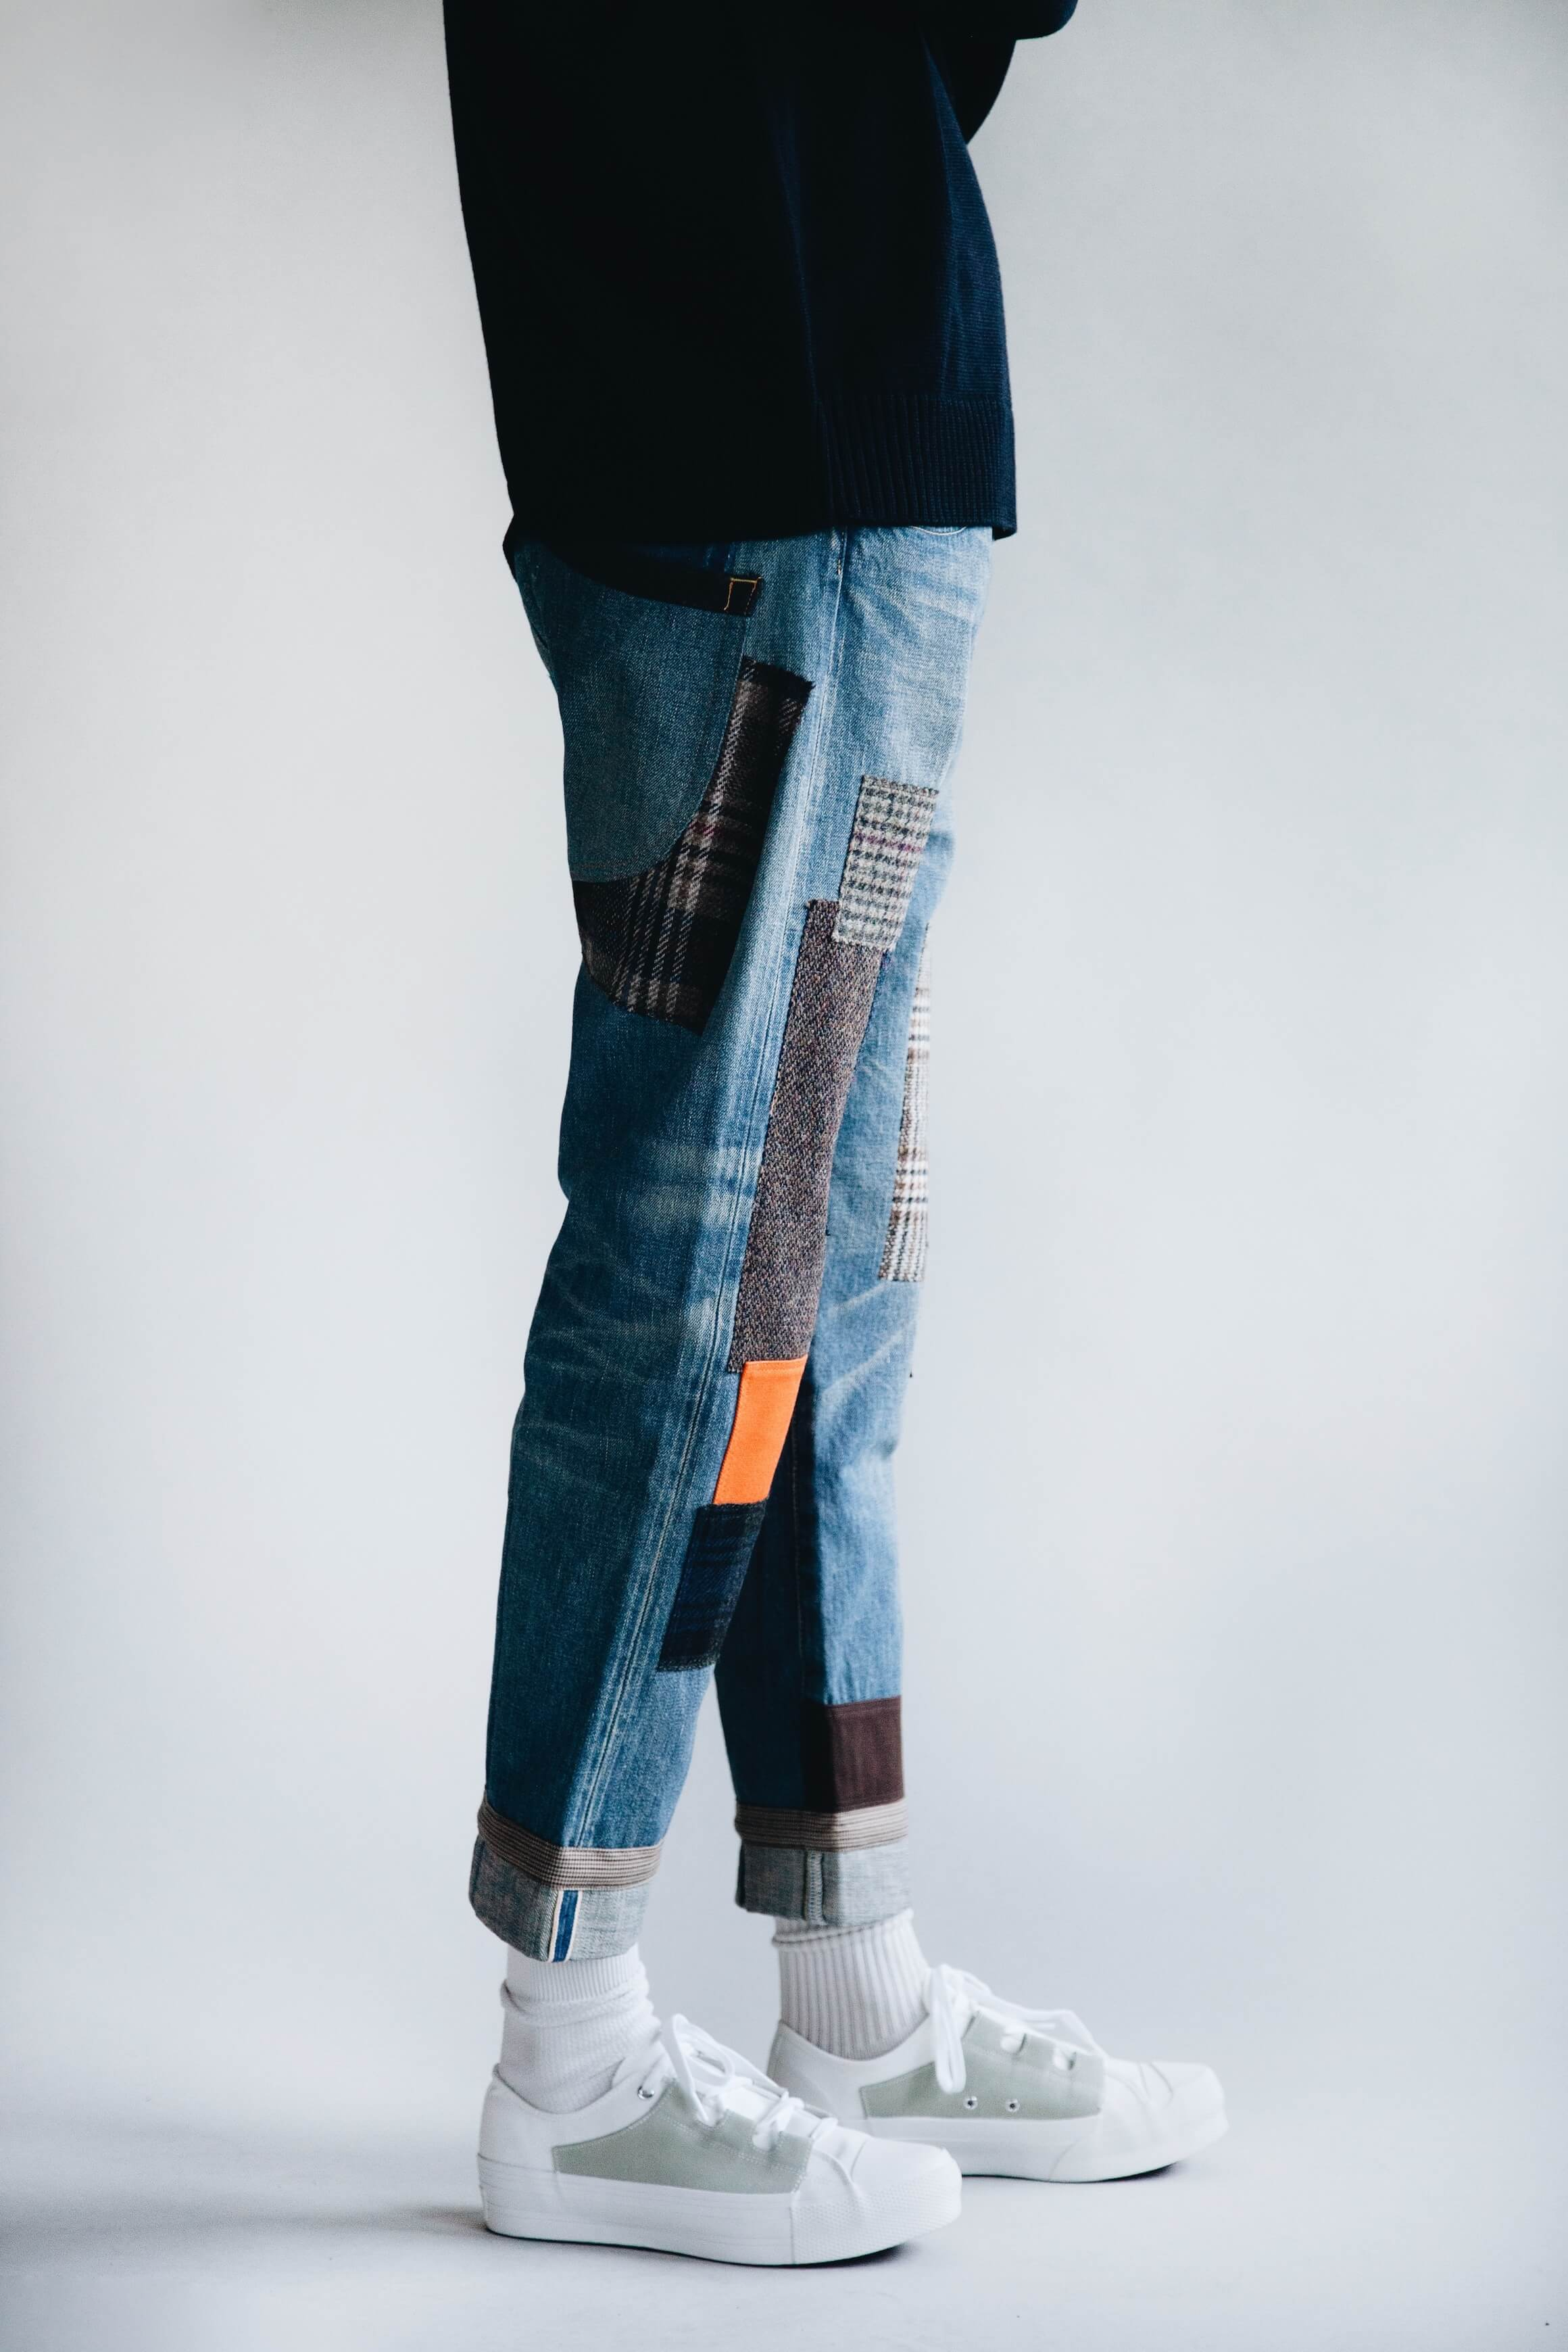 arpenteur dock sweater, junya watanabe garment treated denim and needles asymmetric ghillie sneakers on body